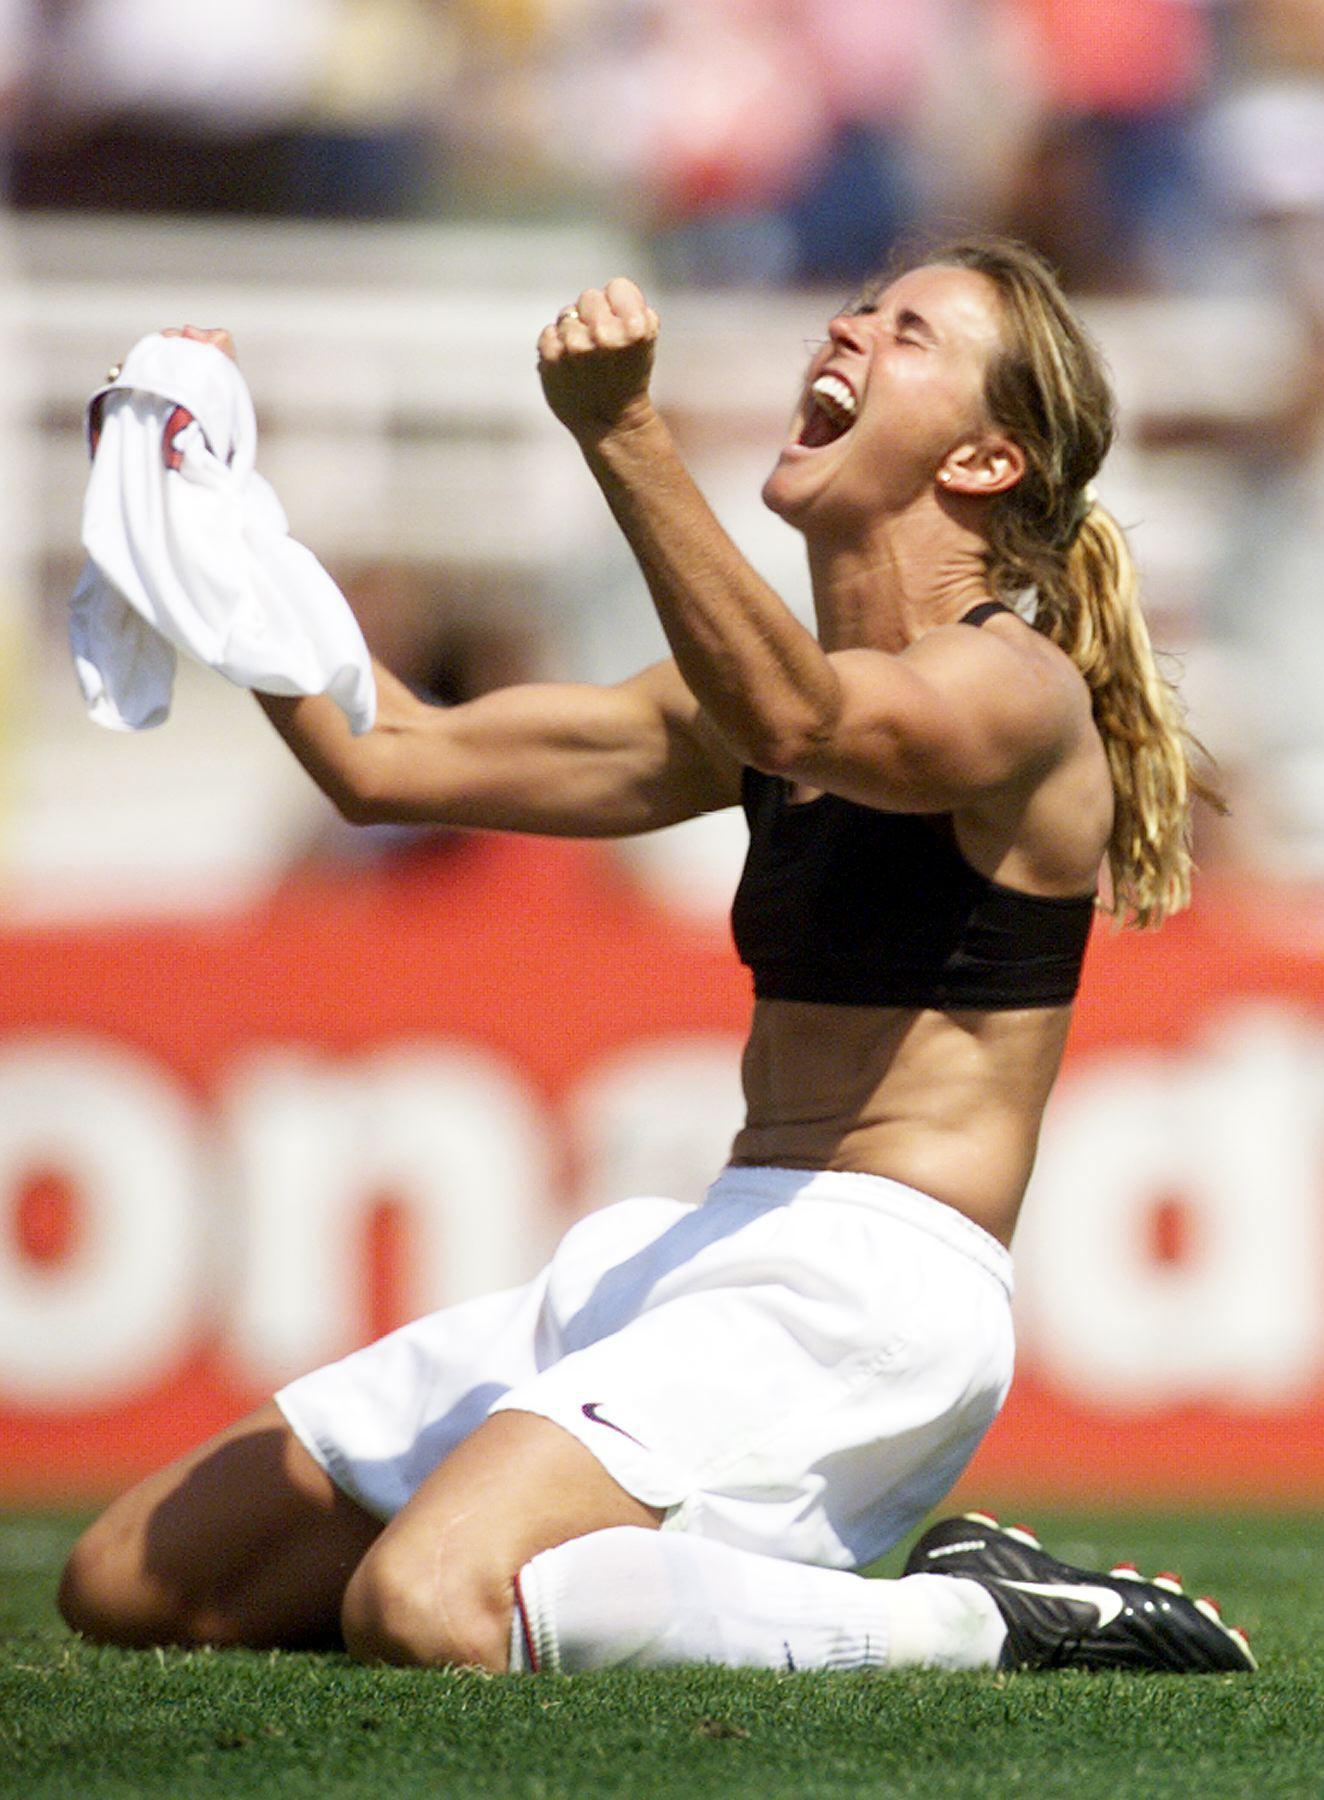 f39f1957e86 ... U.S. Women s National Soccer Team won their first World Cup. Brandi  Chastain celebrates after kicking the winning penalty shot. (ROBERTO  SCHMIDT AFP